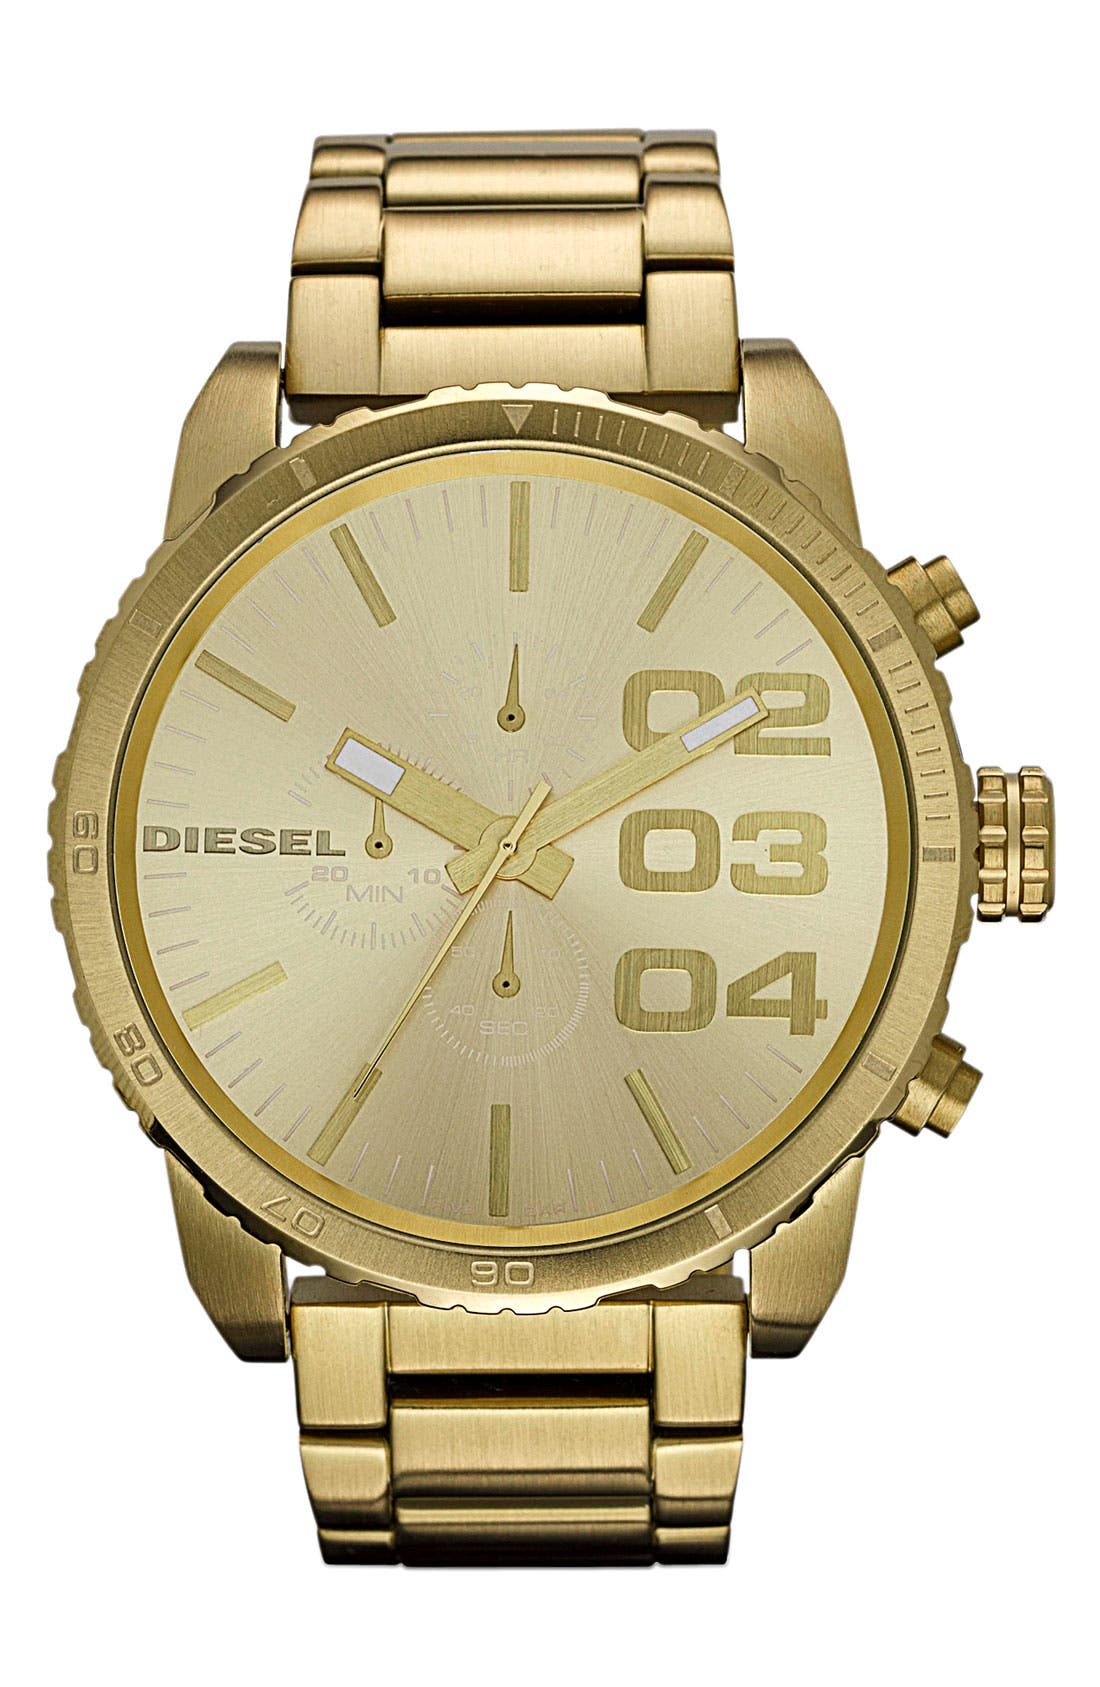 Main Image - DIESEL® 'Double Down' Large Chronograph Bracelet Watch, 52mm